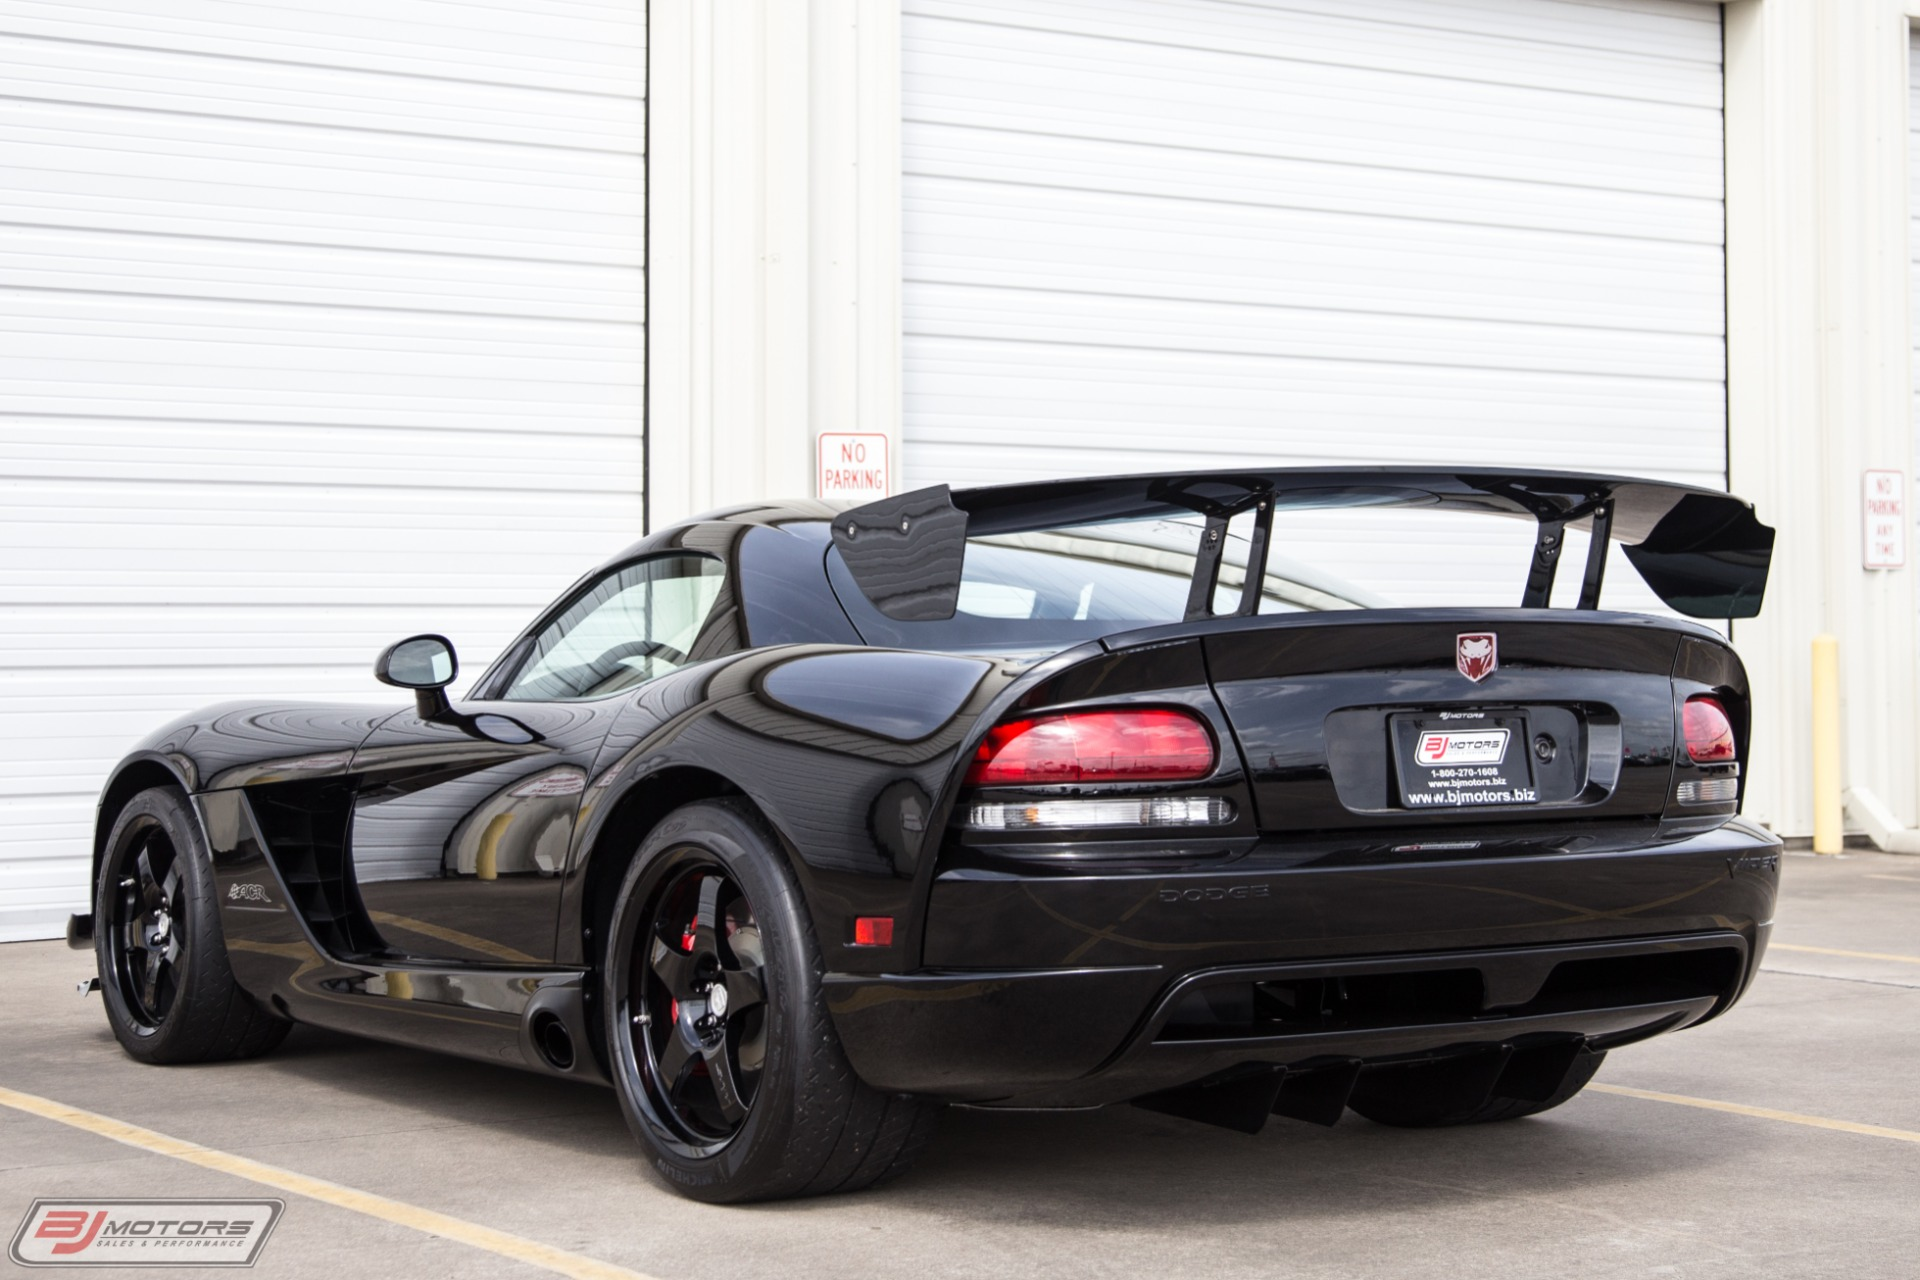 Used-2009-Dodge-Viper-SRT-10-ACR-Only-14-Miles